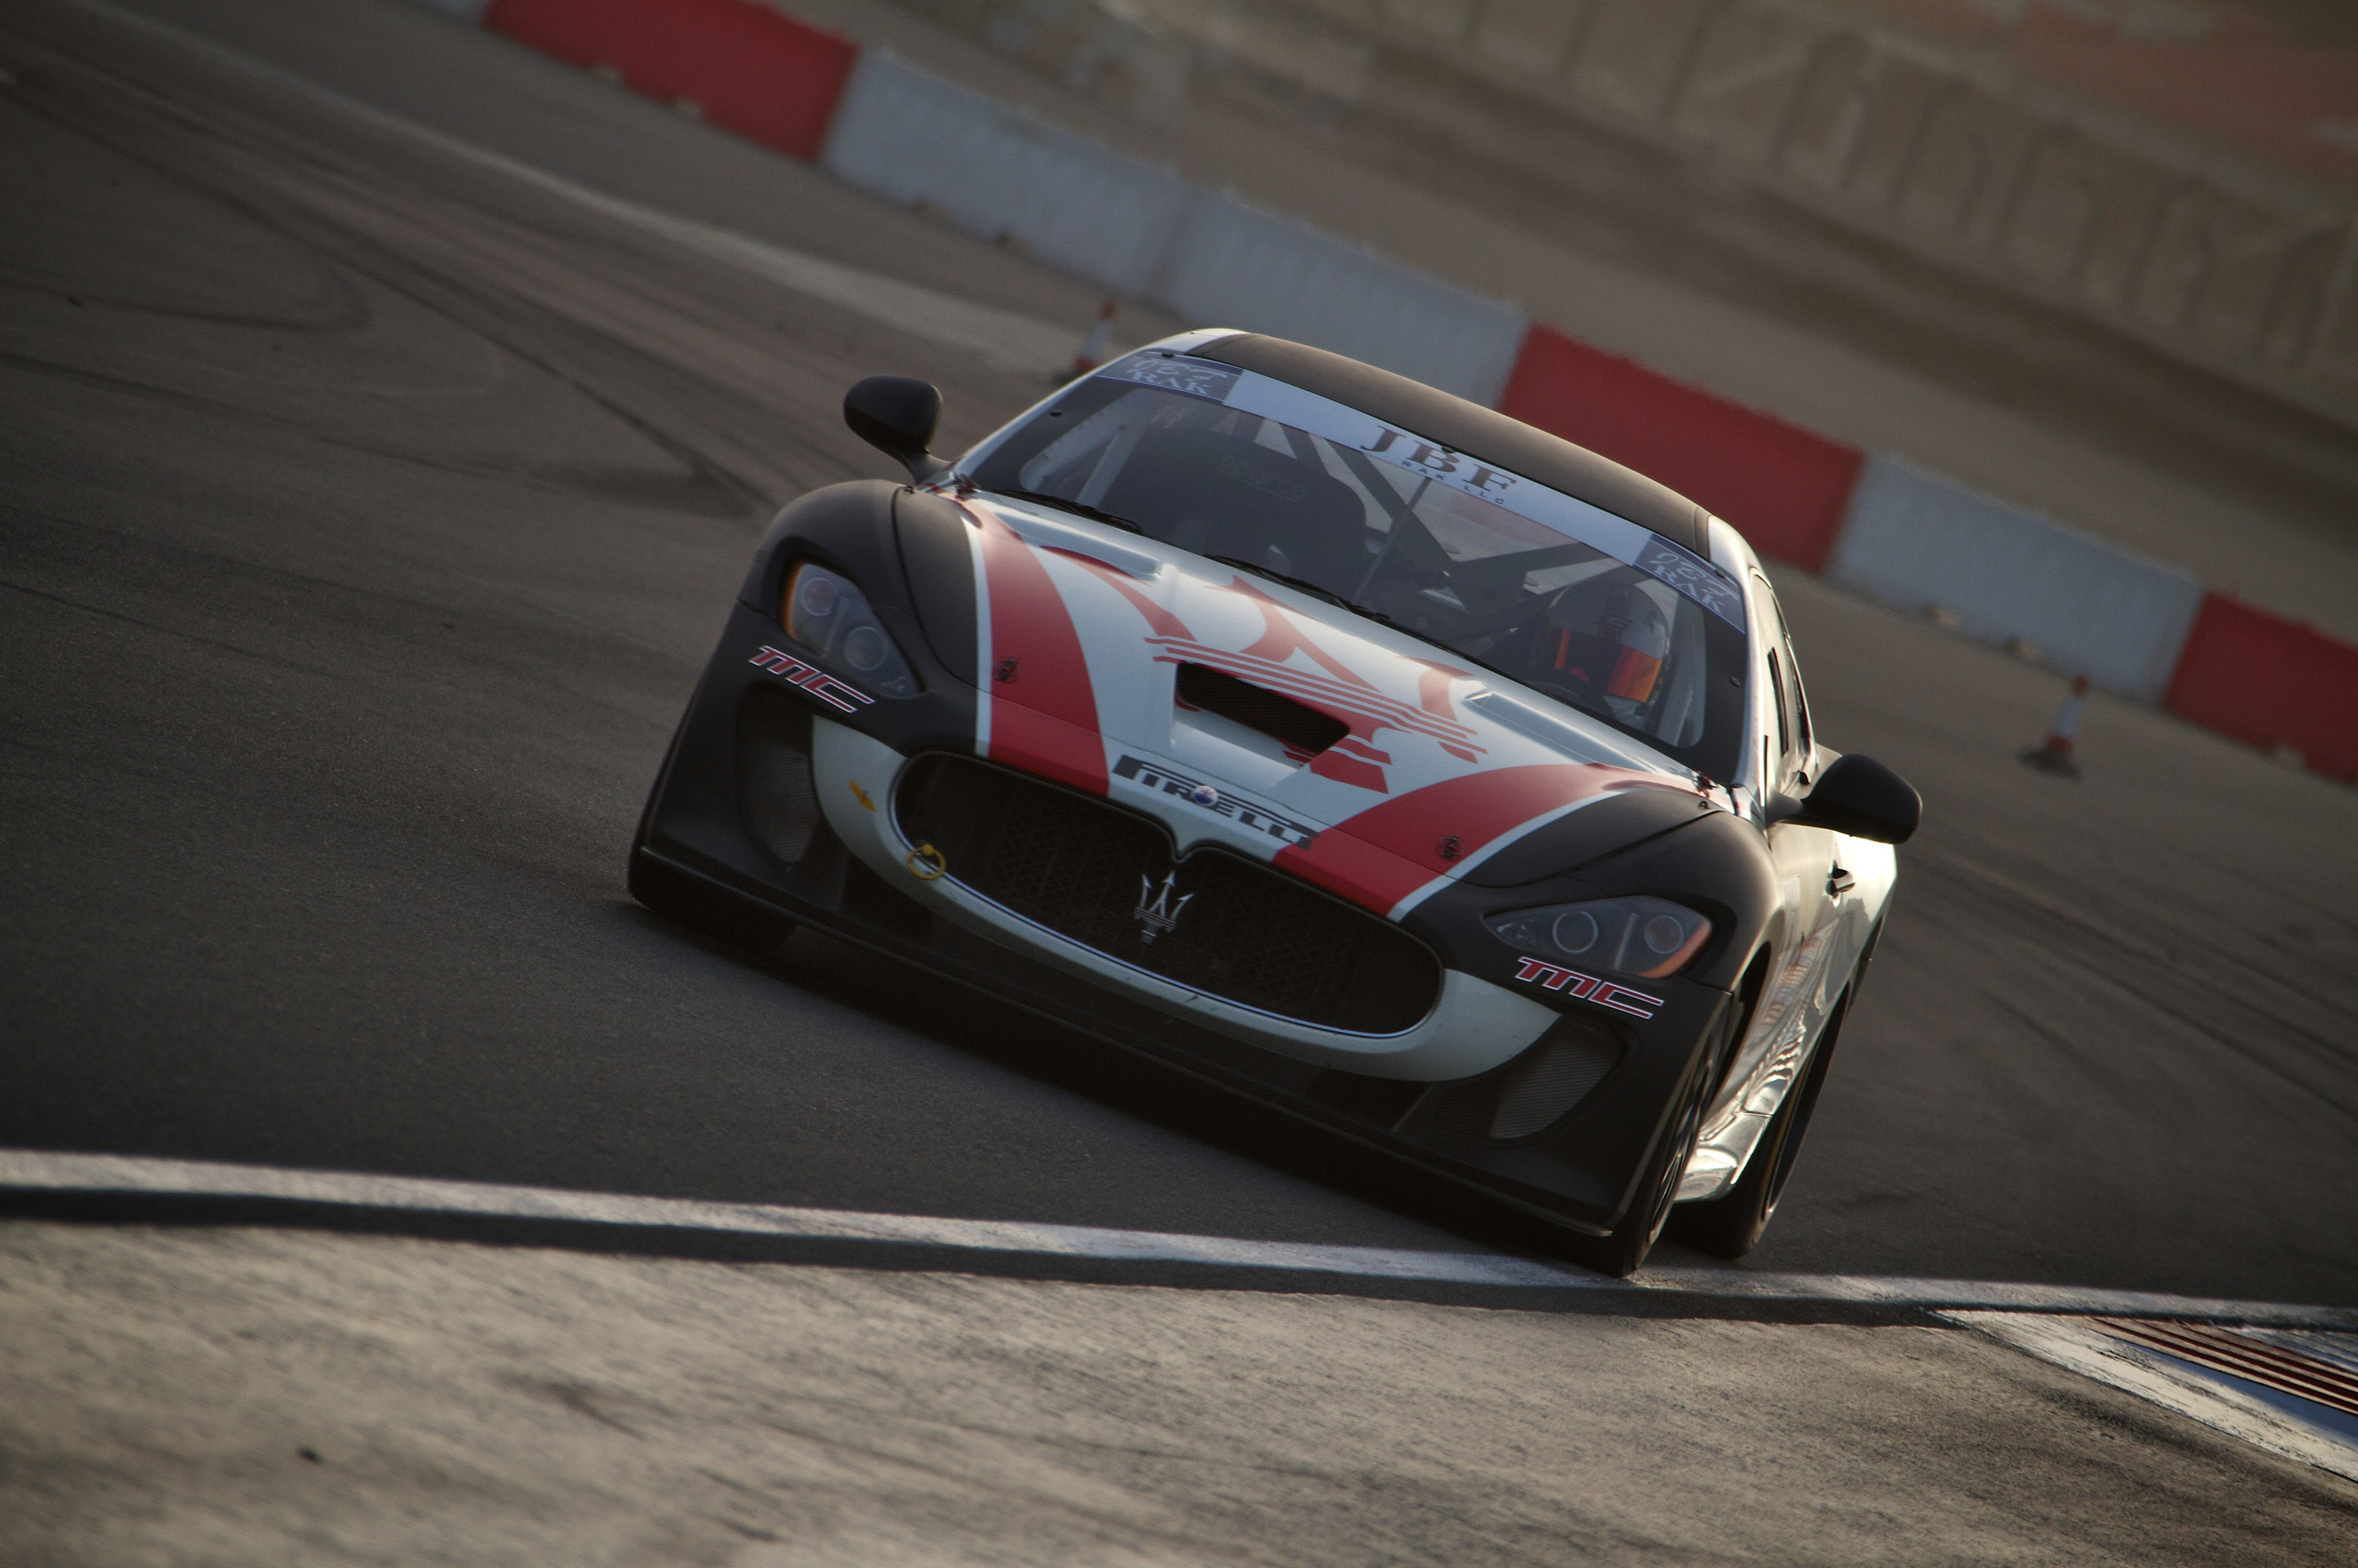 Maserati Trofeo: Lebanese ace Joe Ghanem clinches championship title in spectacular drama filled race weekend